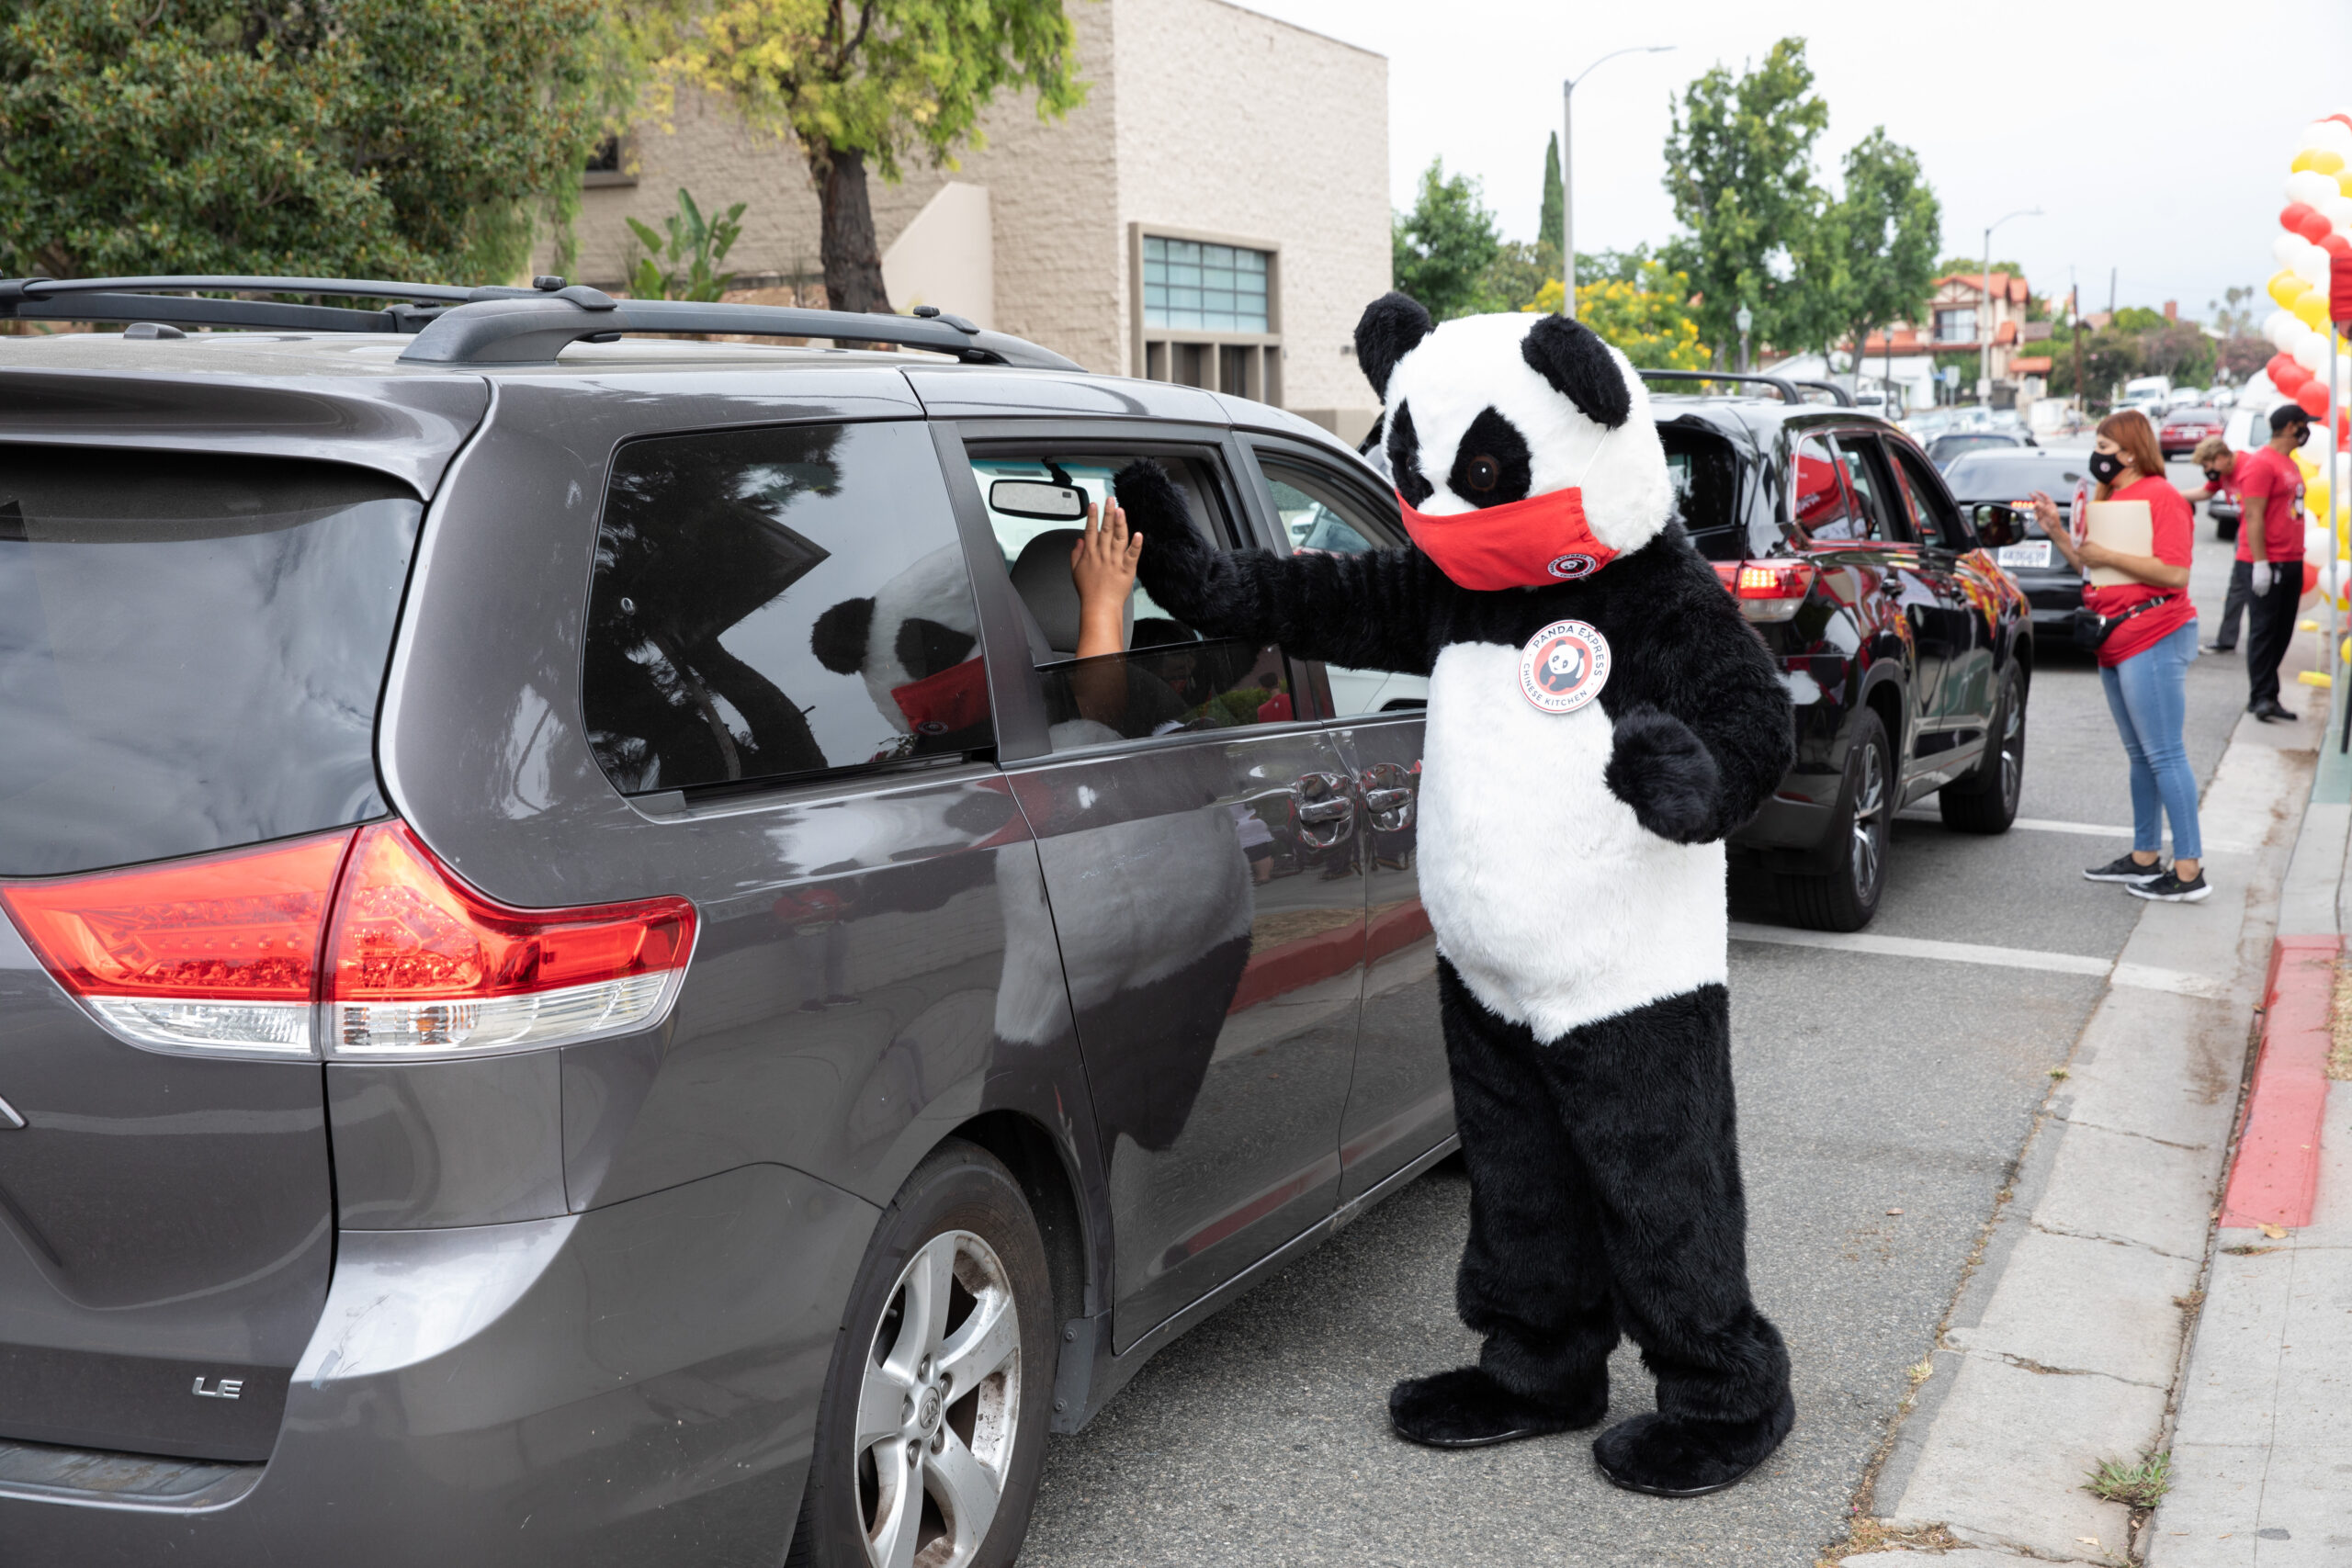 Children of Boys & Girls Club of America celebrate Panda Cares Day™ with Panda Express with a drive-by party on Aug. 6, 2020, in Monterey Park, Calif. There are 88 Panda Cares Day™ events happening at other Boys & Girls Club locations and Children's Miracle Network Hospitals. (Mark Von Holden/AP Images for Panda Express)